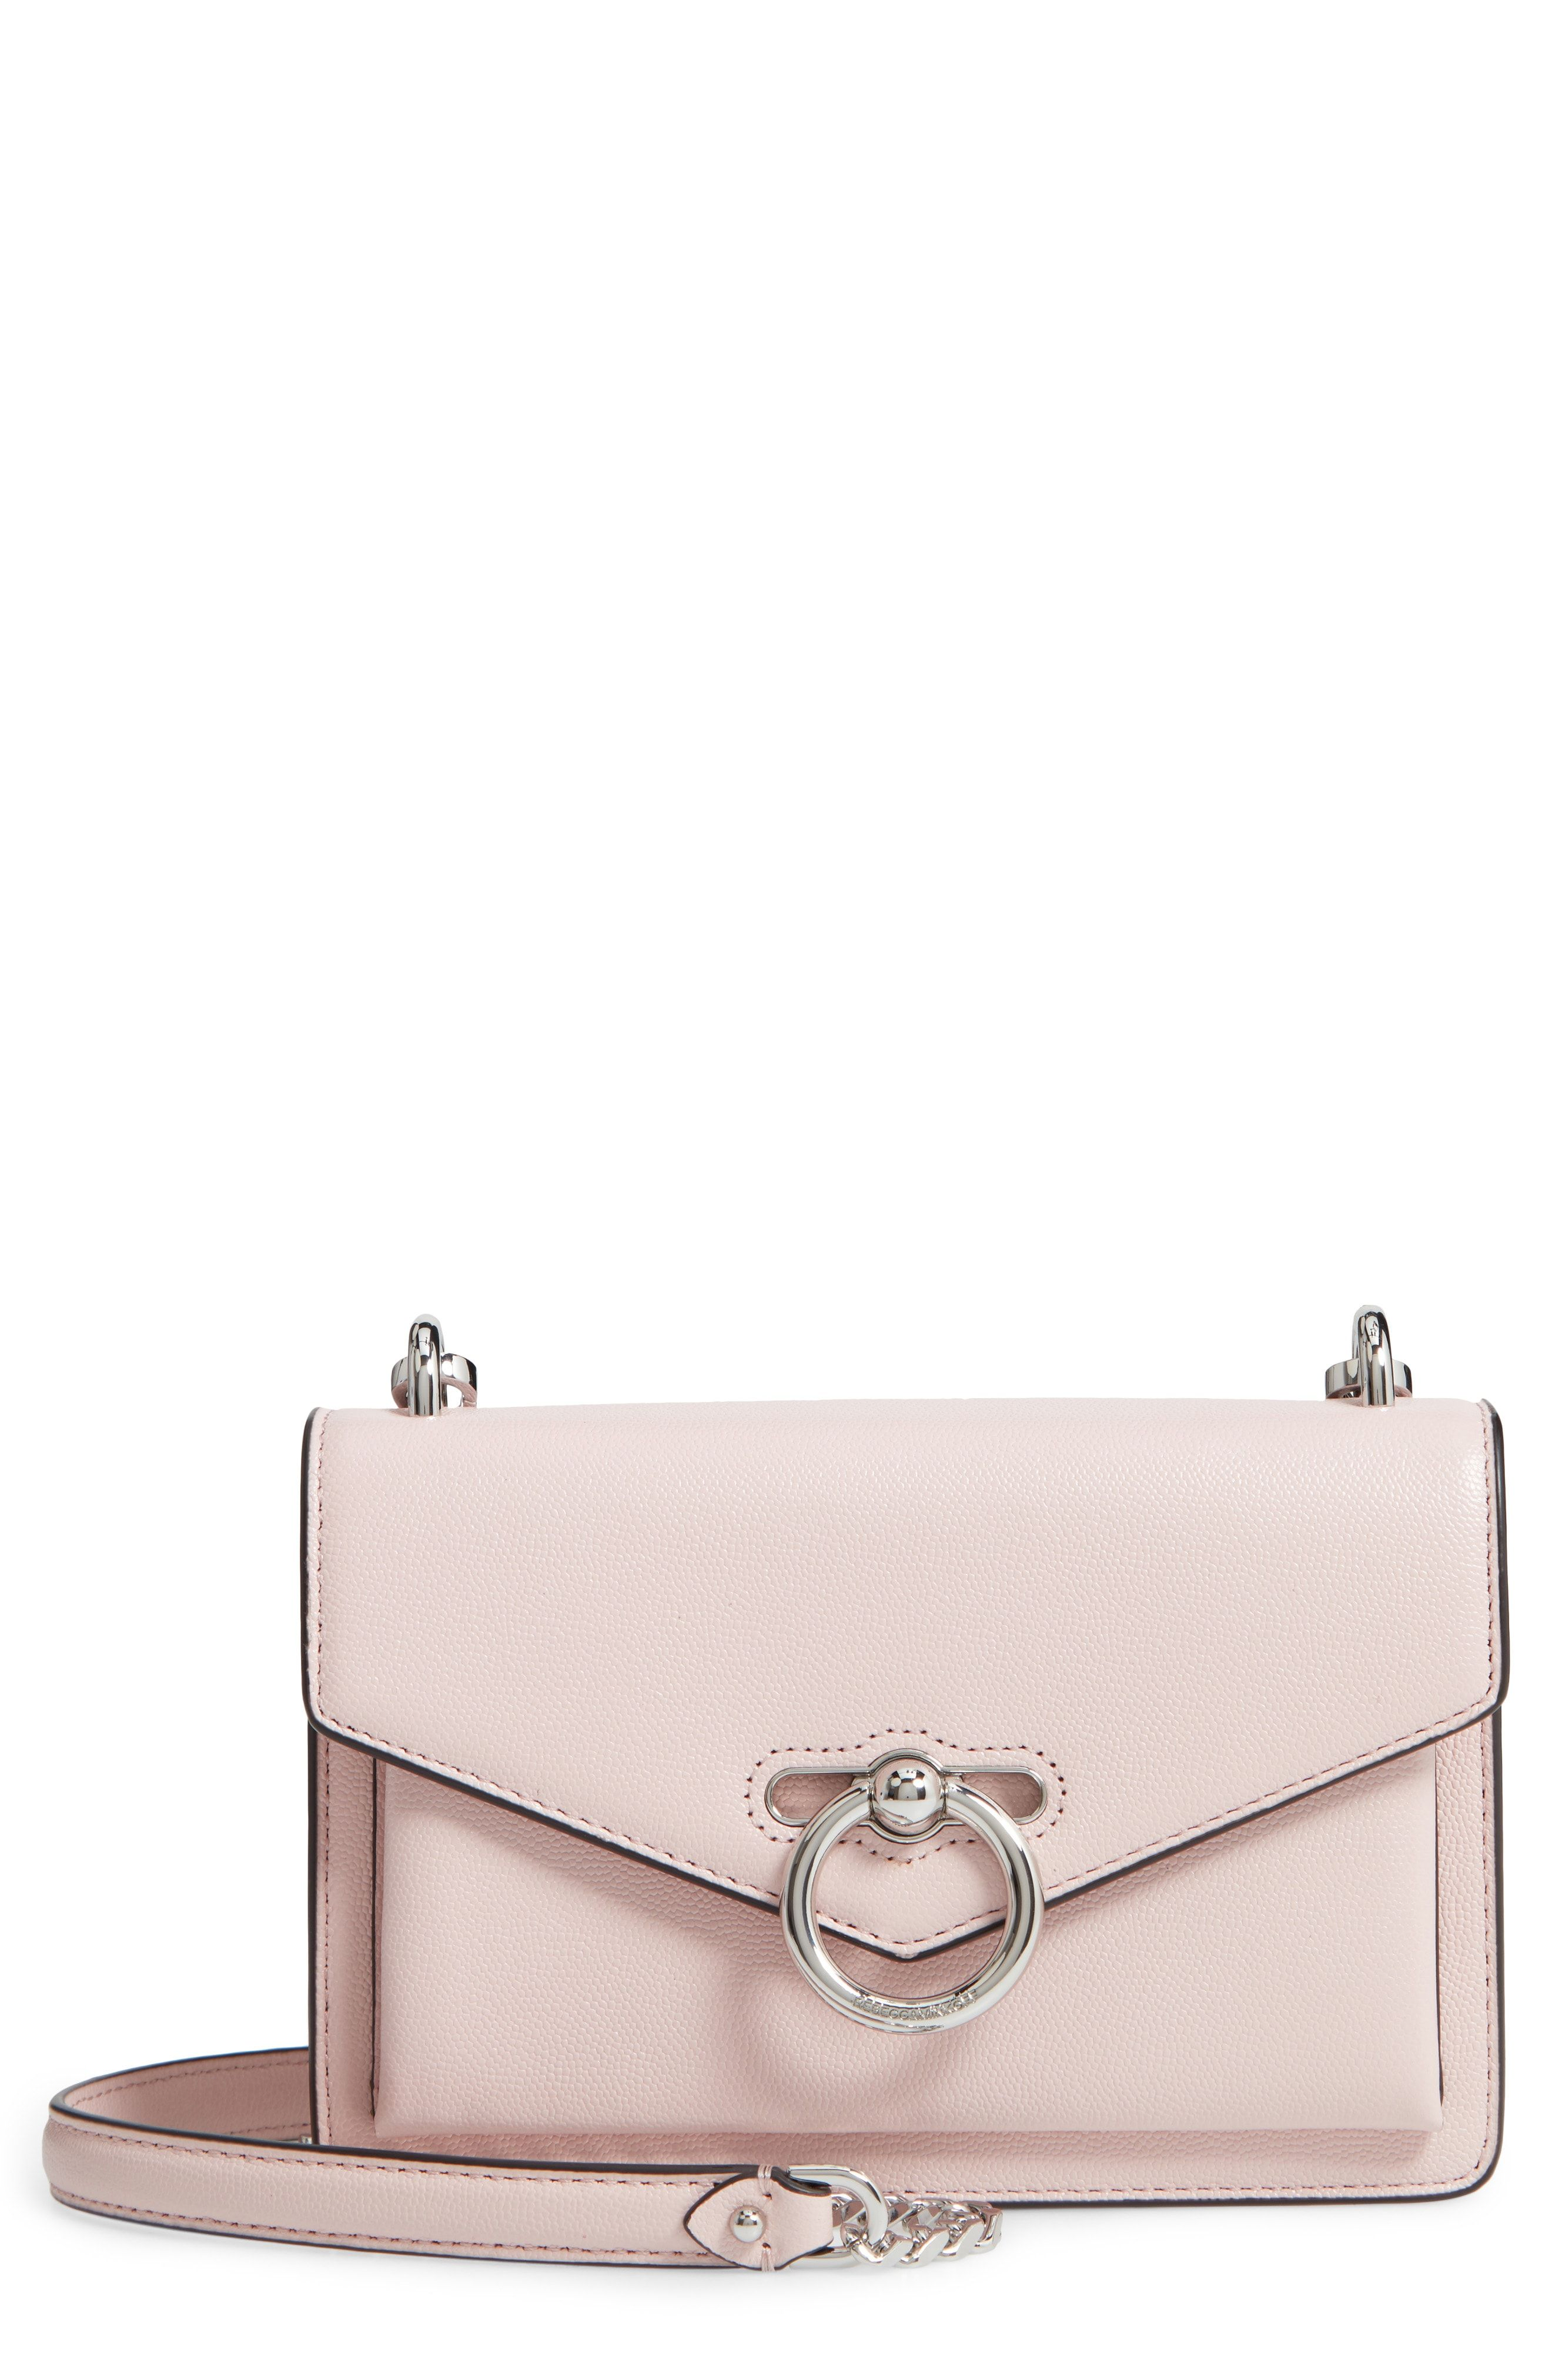 3a09f86a 12 Cute Crossbody Bags for 2018 - Designer Leather Crossbody Purses for  Women